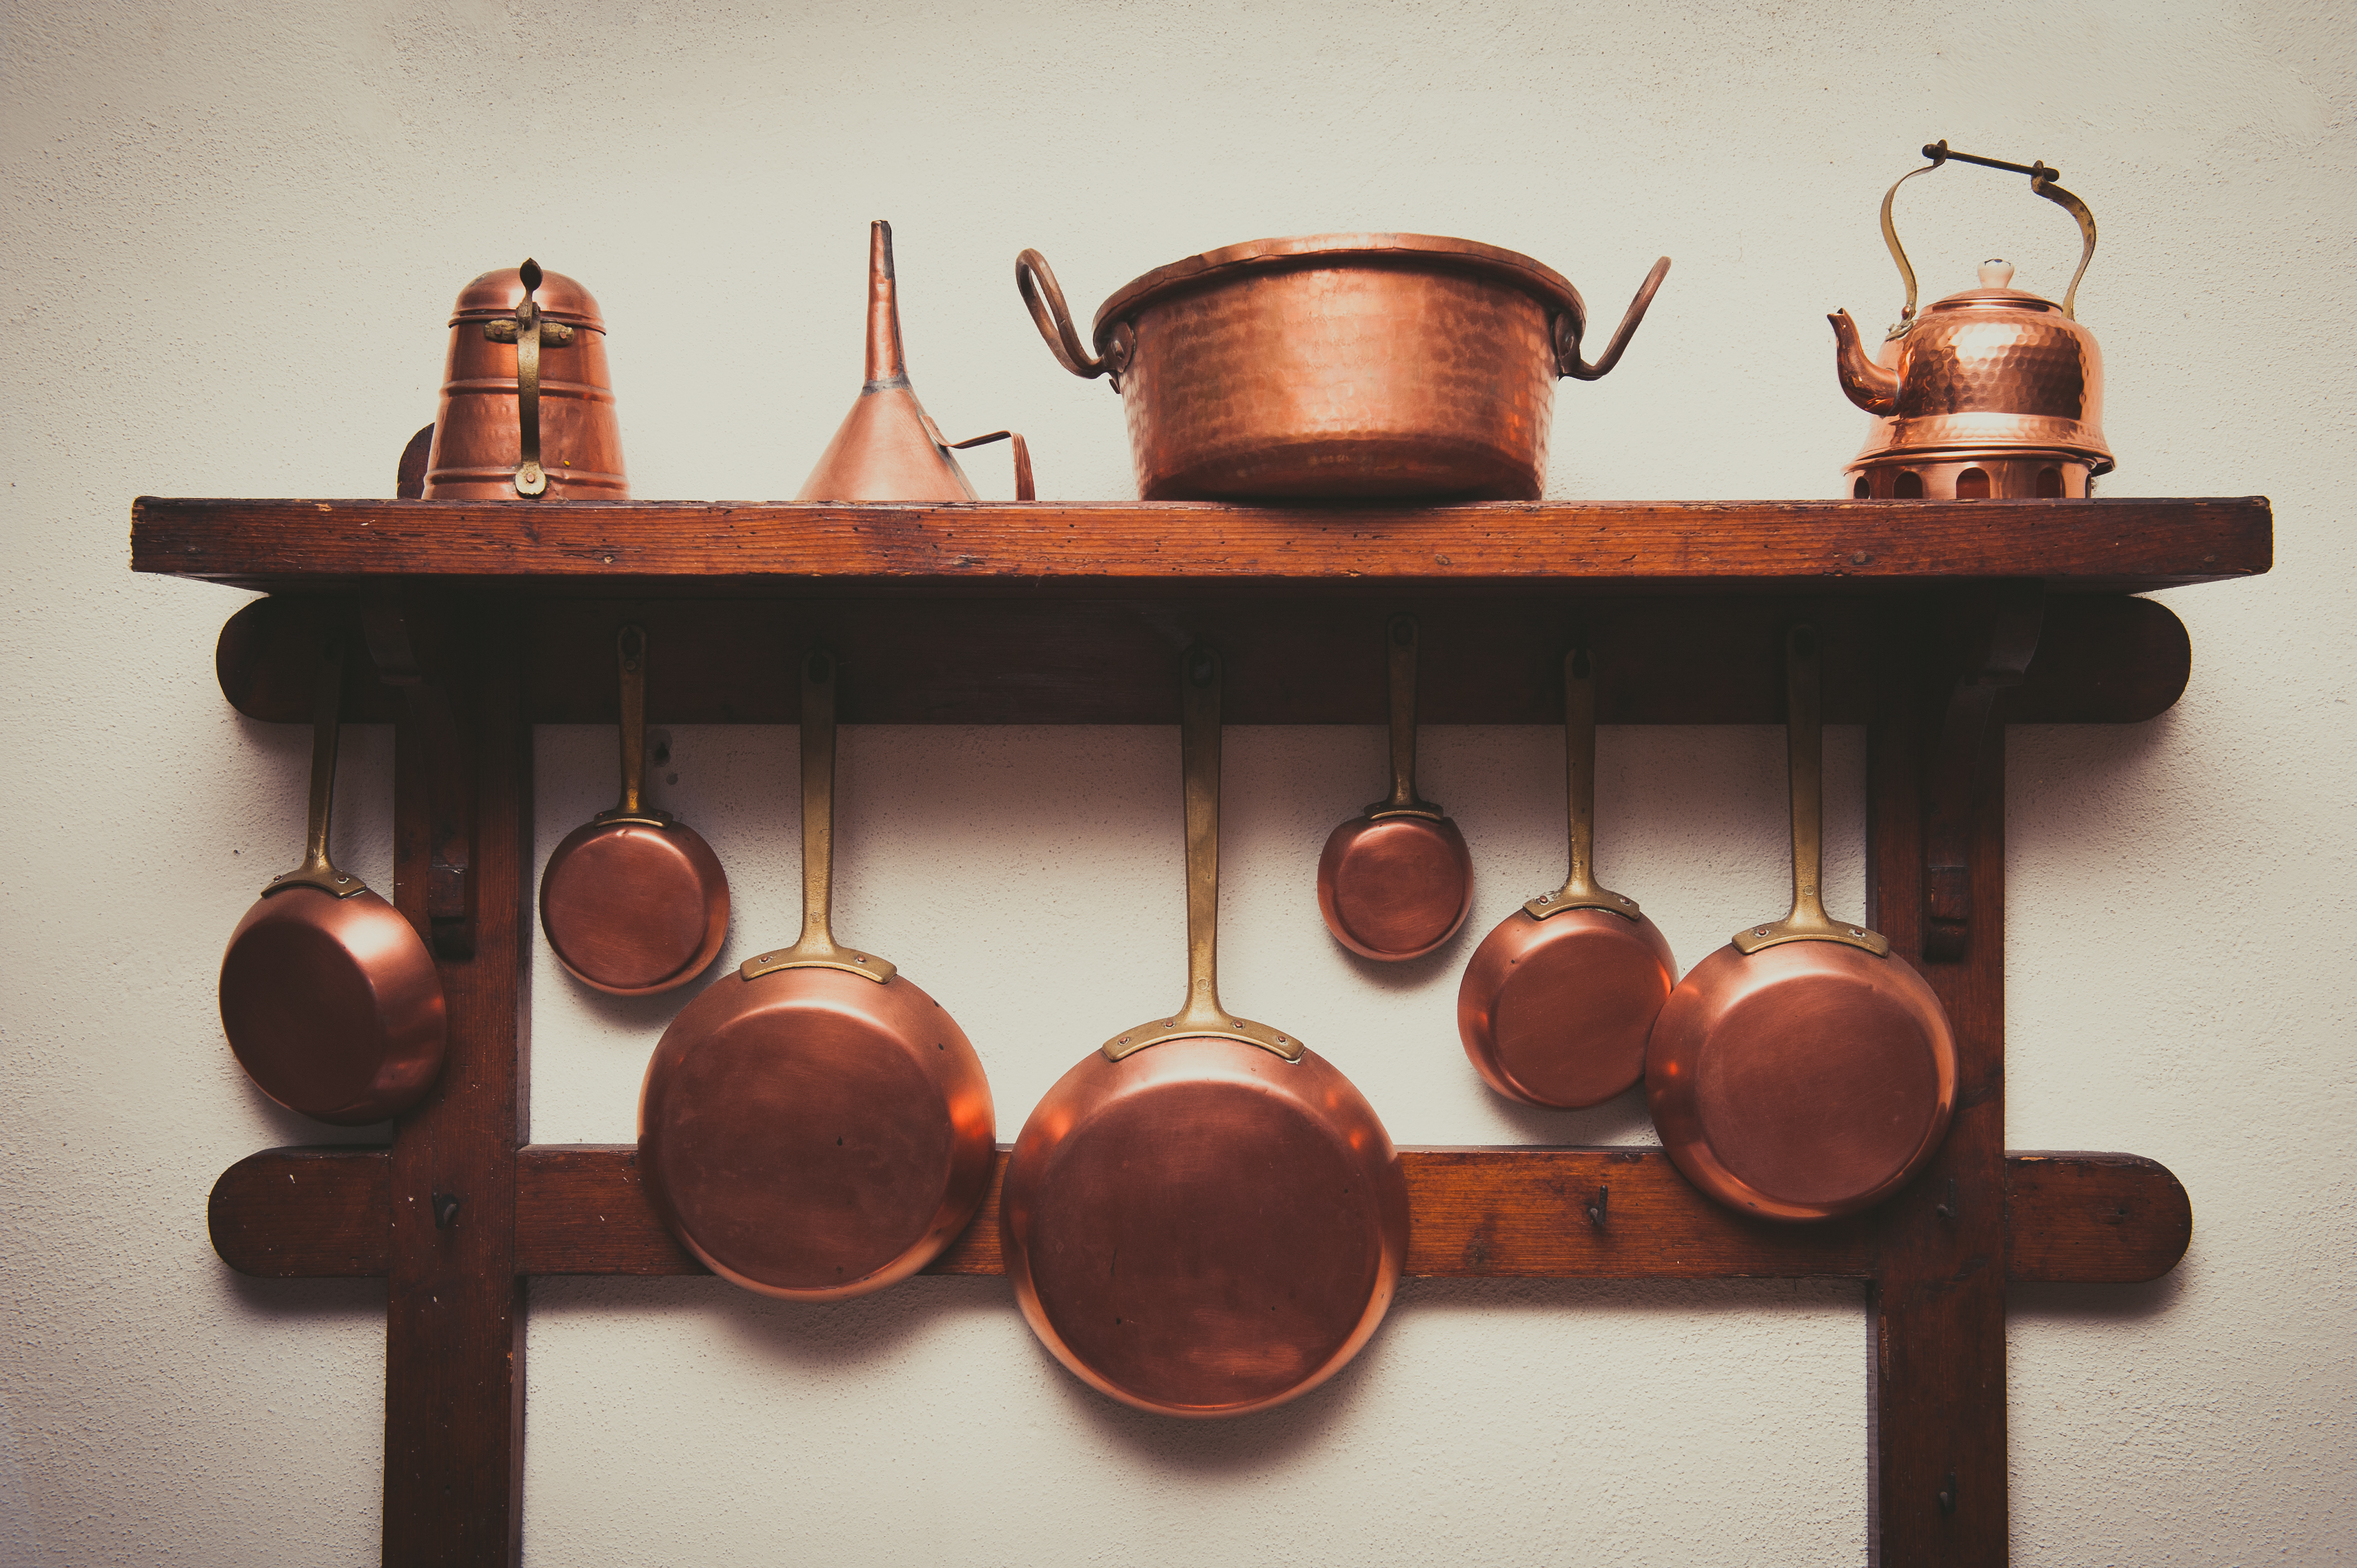 Cleaning Copper Pans